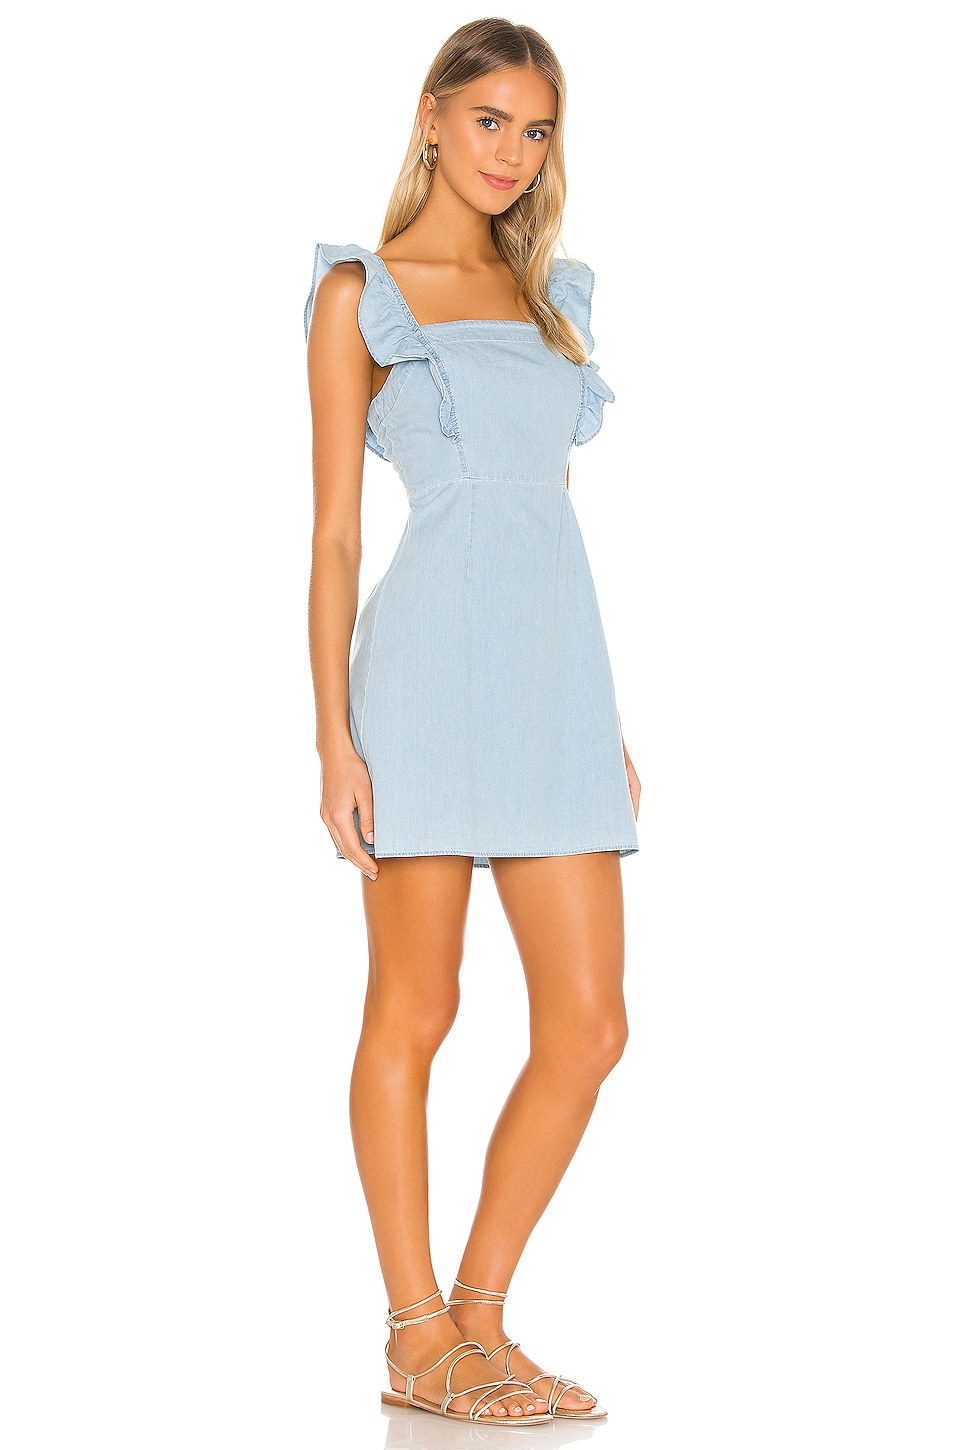 JACK by BB Dakota Chambray All Day Dress, view 2, click to view large image.